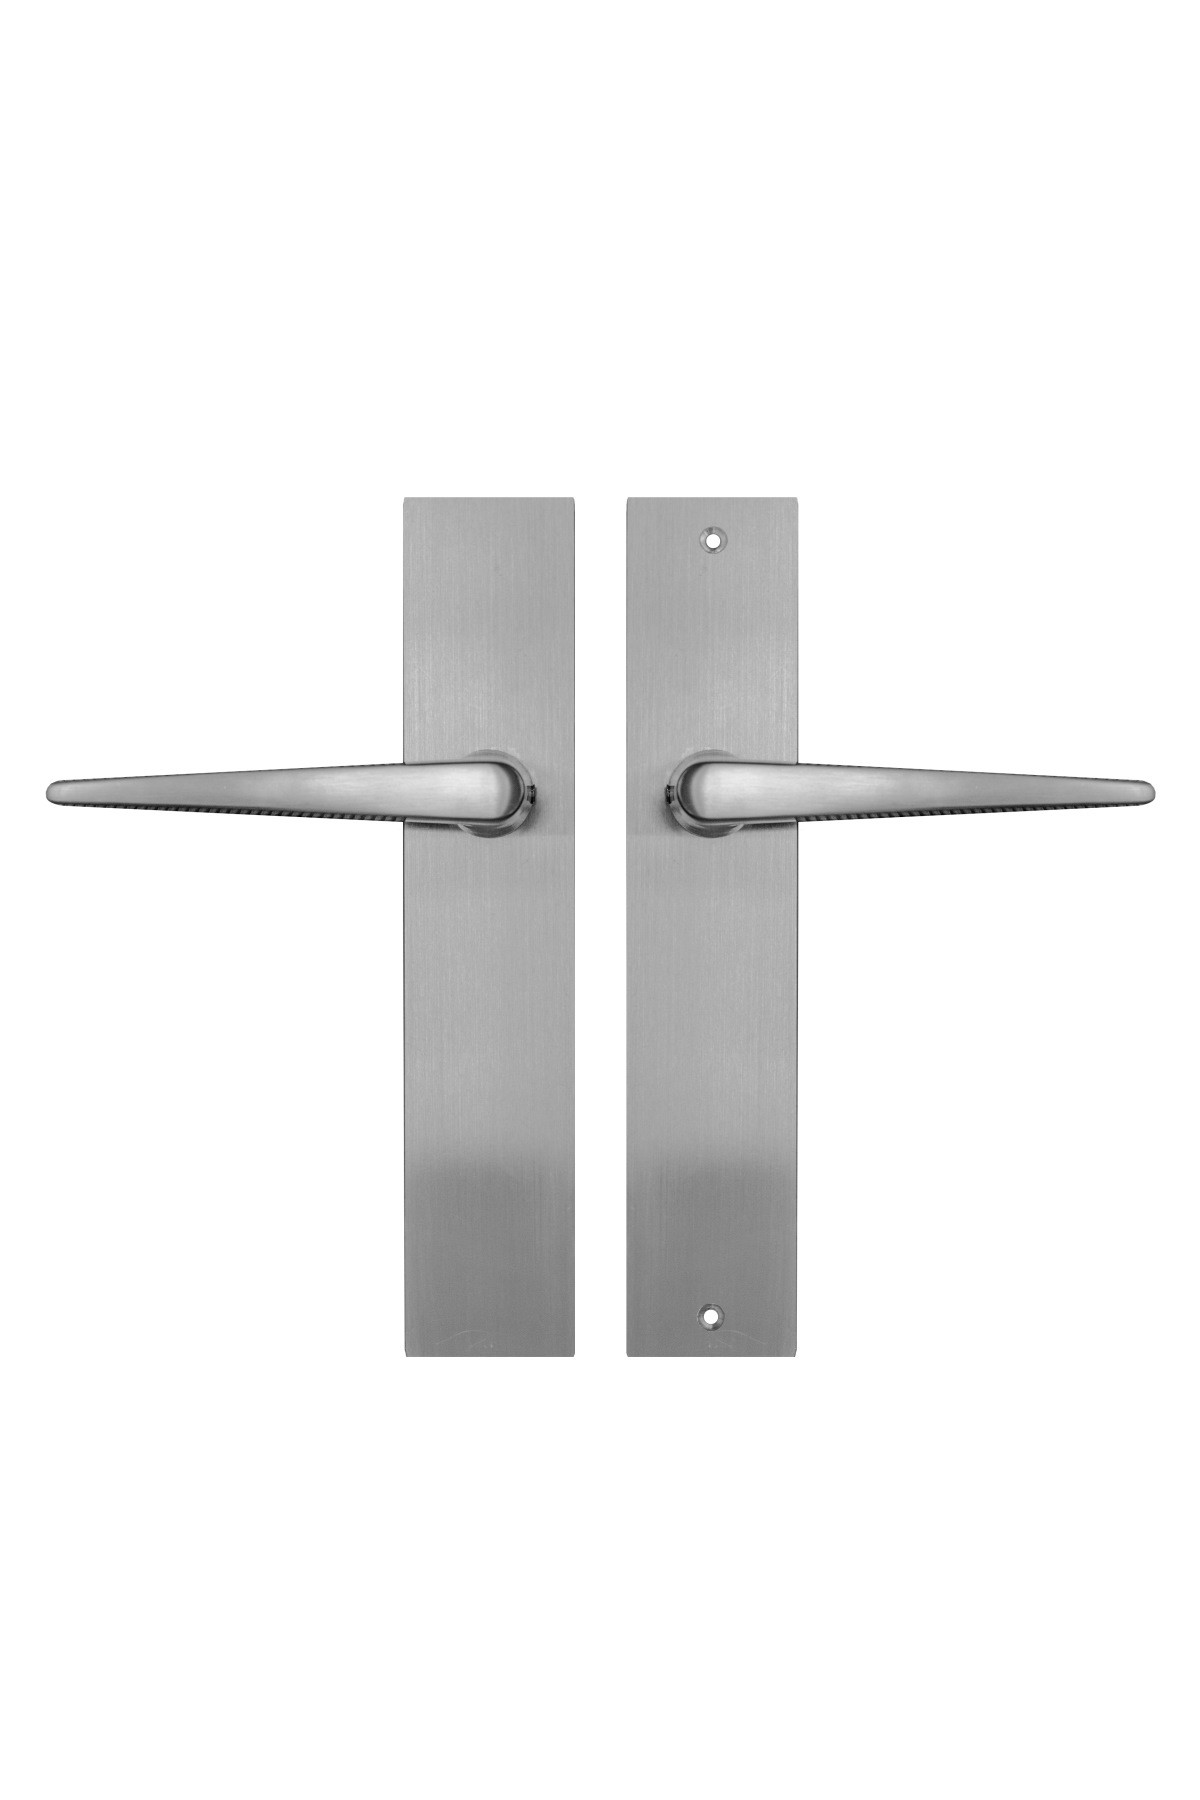 Ahi Hardware Montreal Door Hardware Products No 244 91